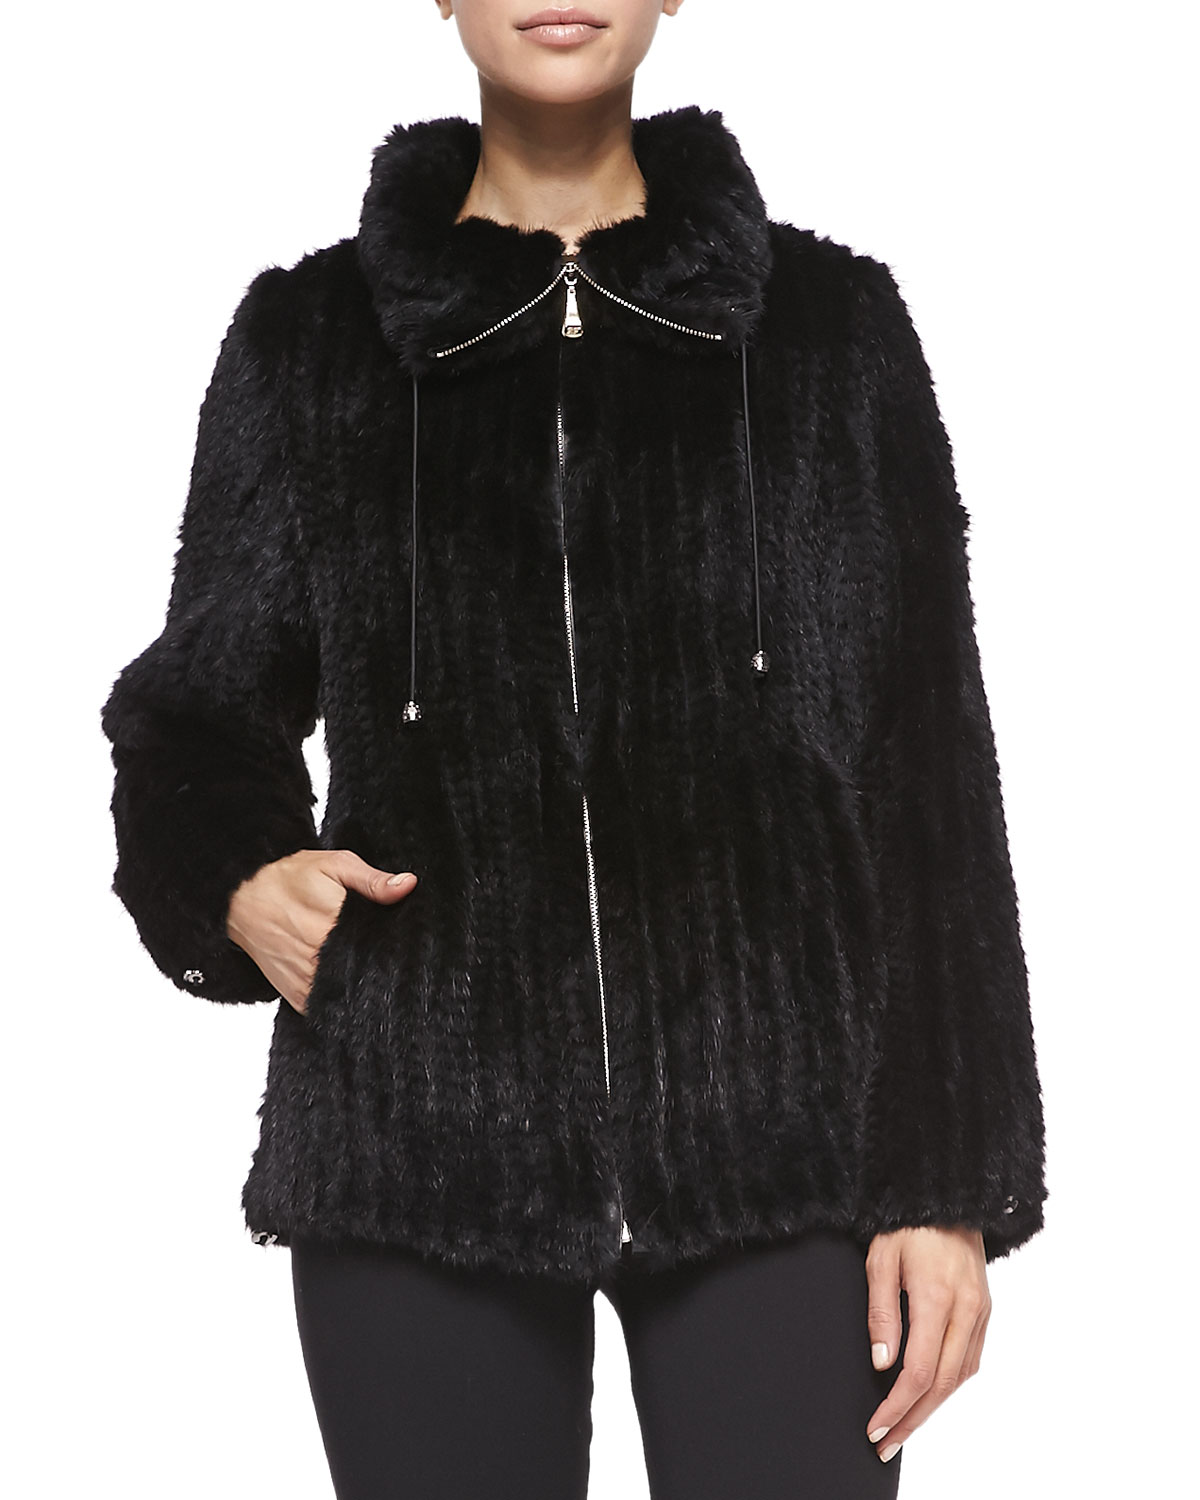 Knitted Mink Fur Bomber Jacket by Belle Fare